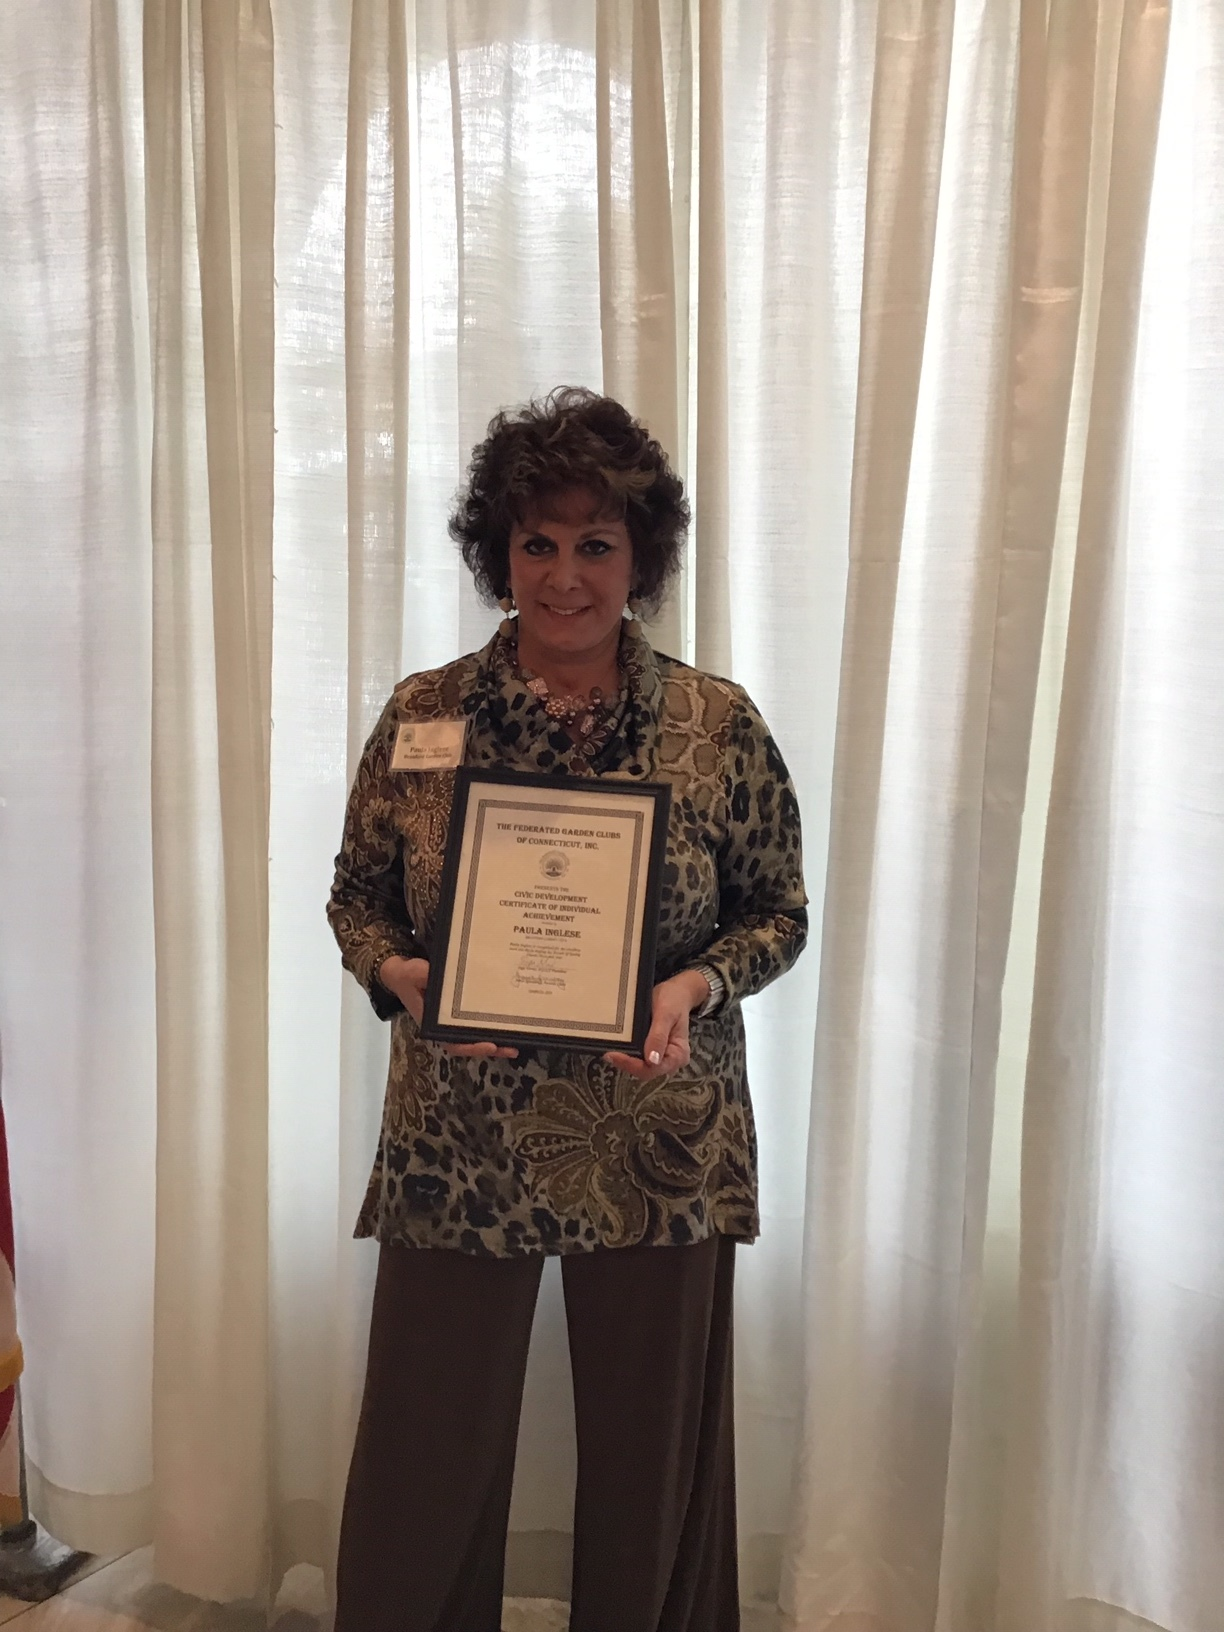 Paula Inglese received an Individual Certificate of Achievement, Civic Creativity Award, for her excellence and creativity in staging at the Breath of Spring Flower Show held in Hartford in February.